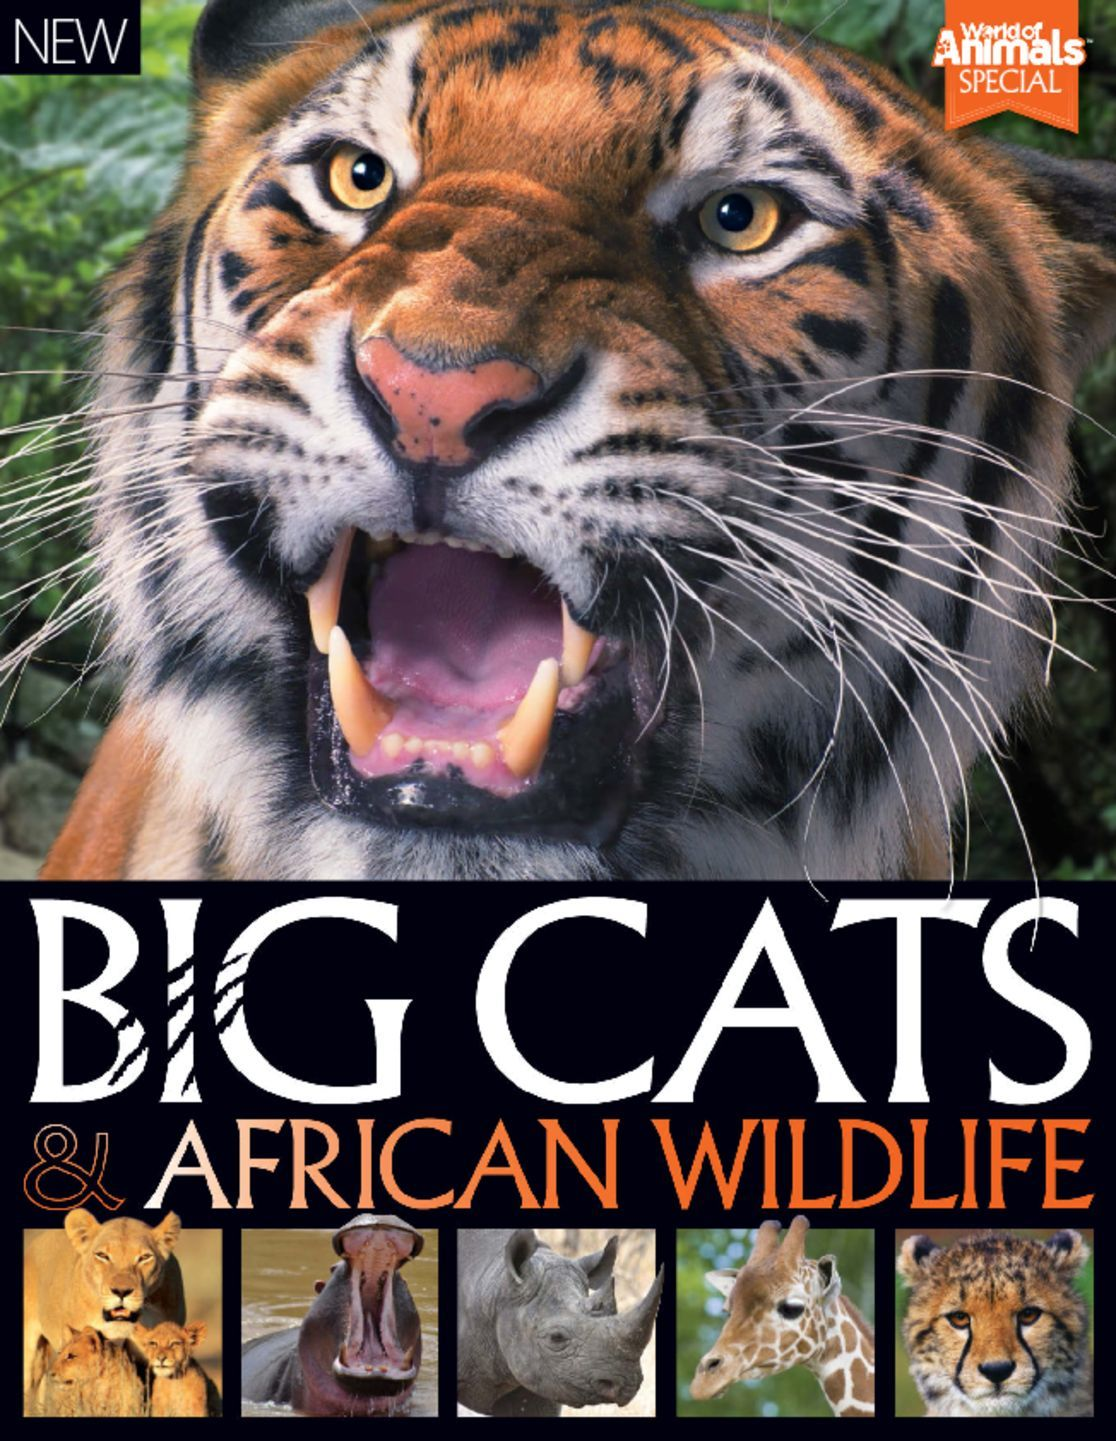 World of Animals Book of Big Cats and African Wildlife (Digital)